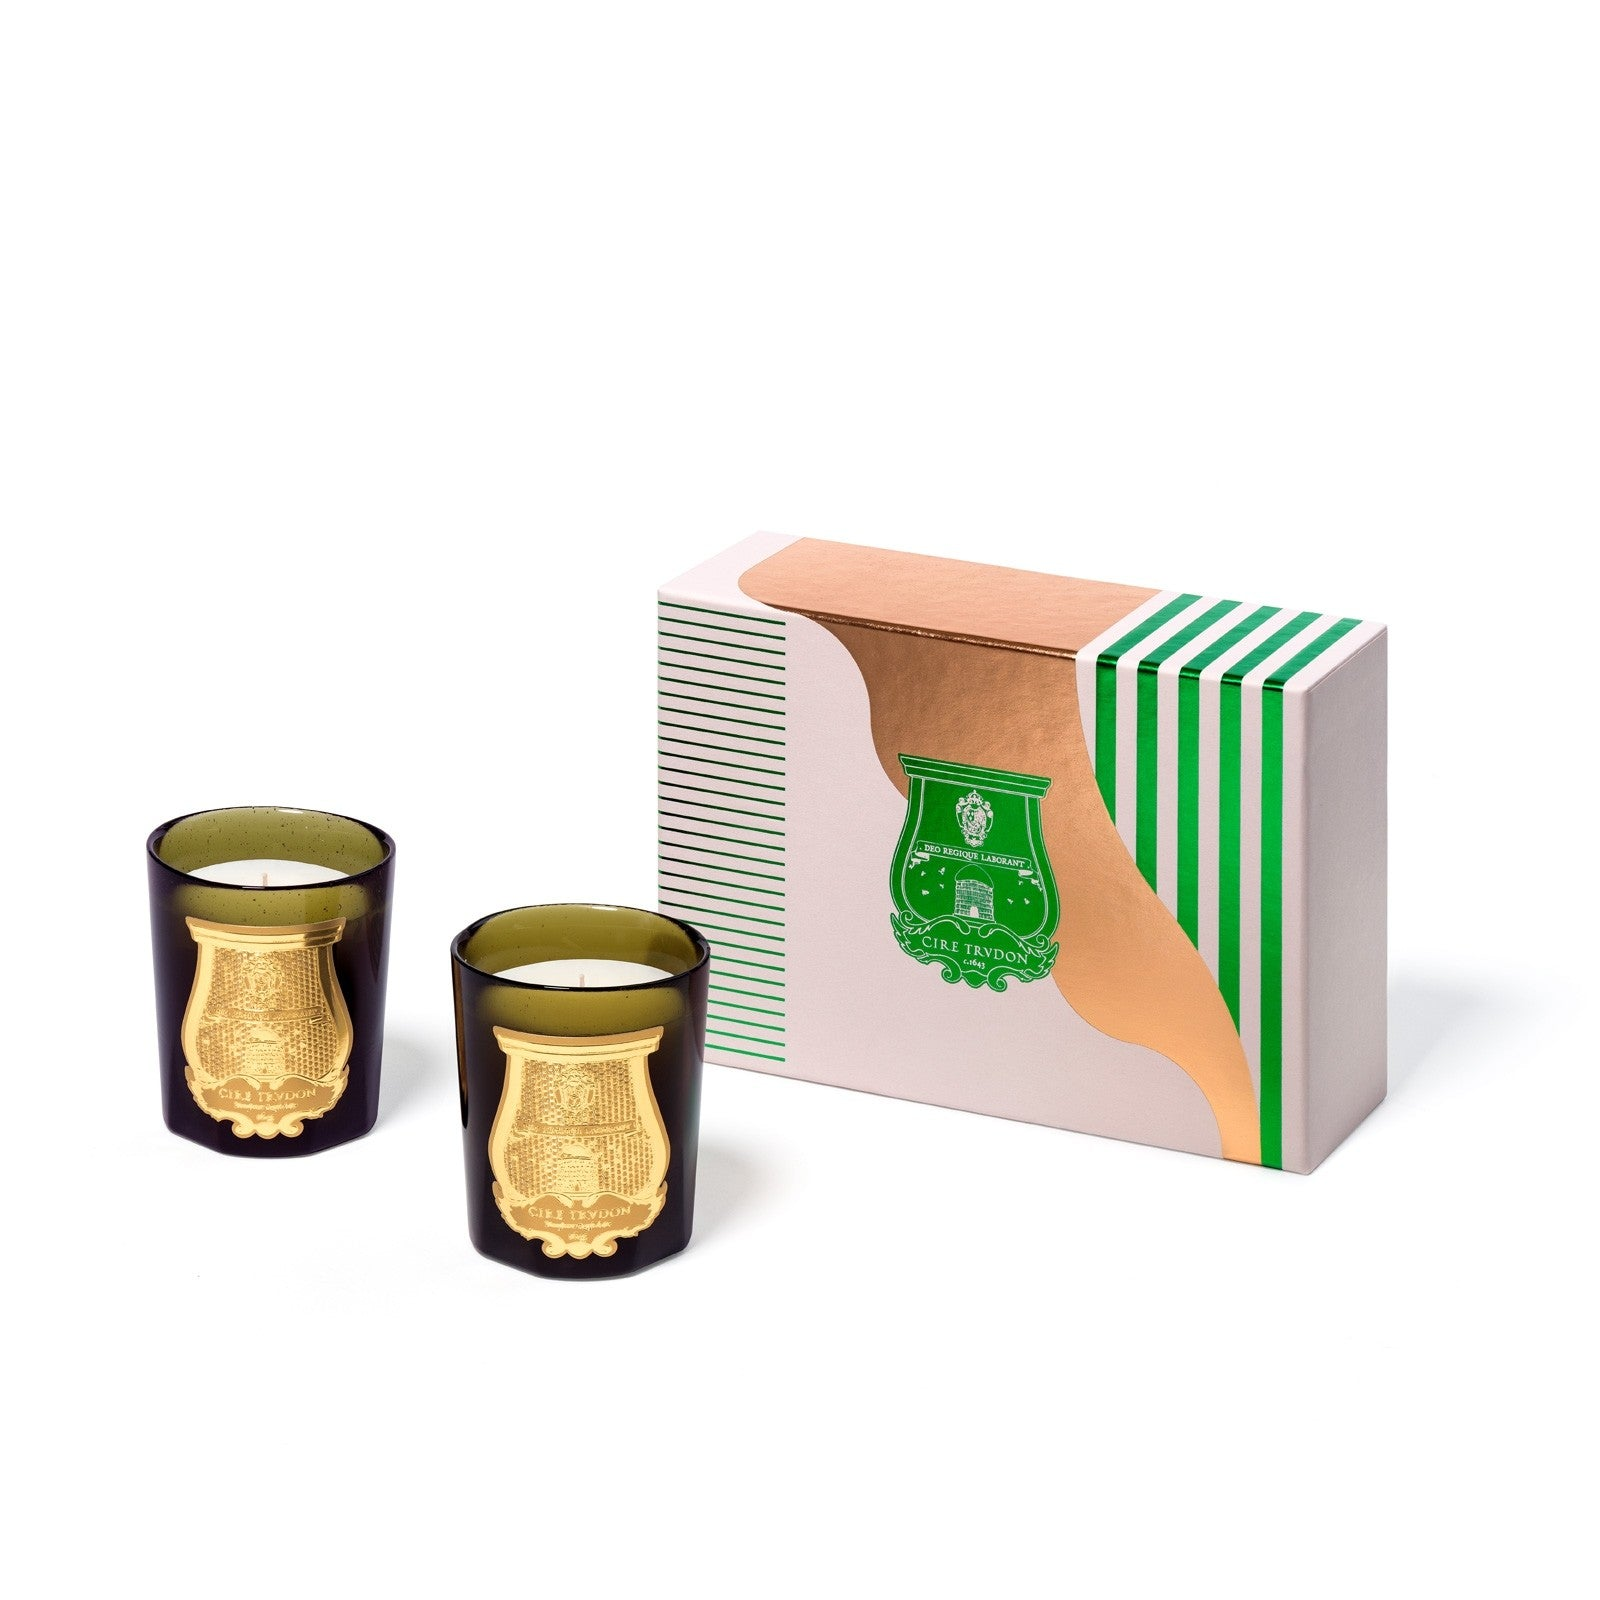 Cire Trudon Duet Candle Imperial Gift Set